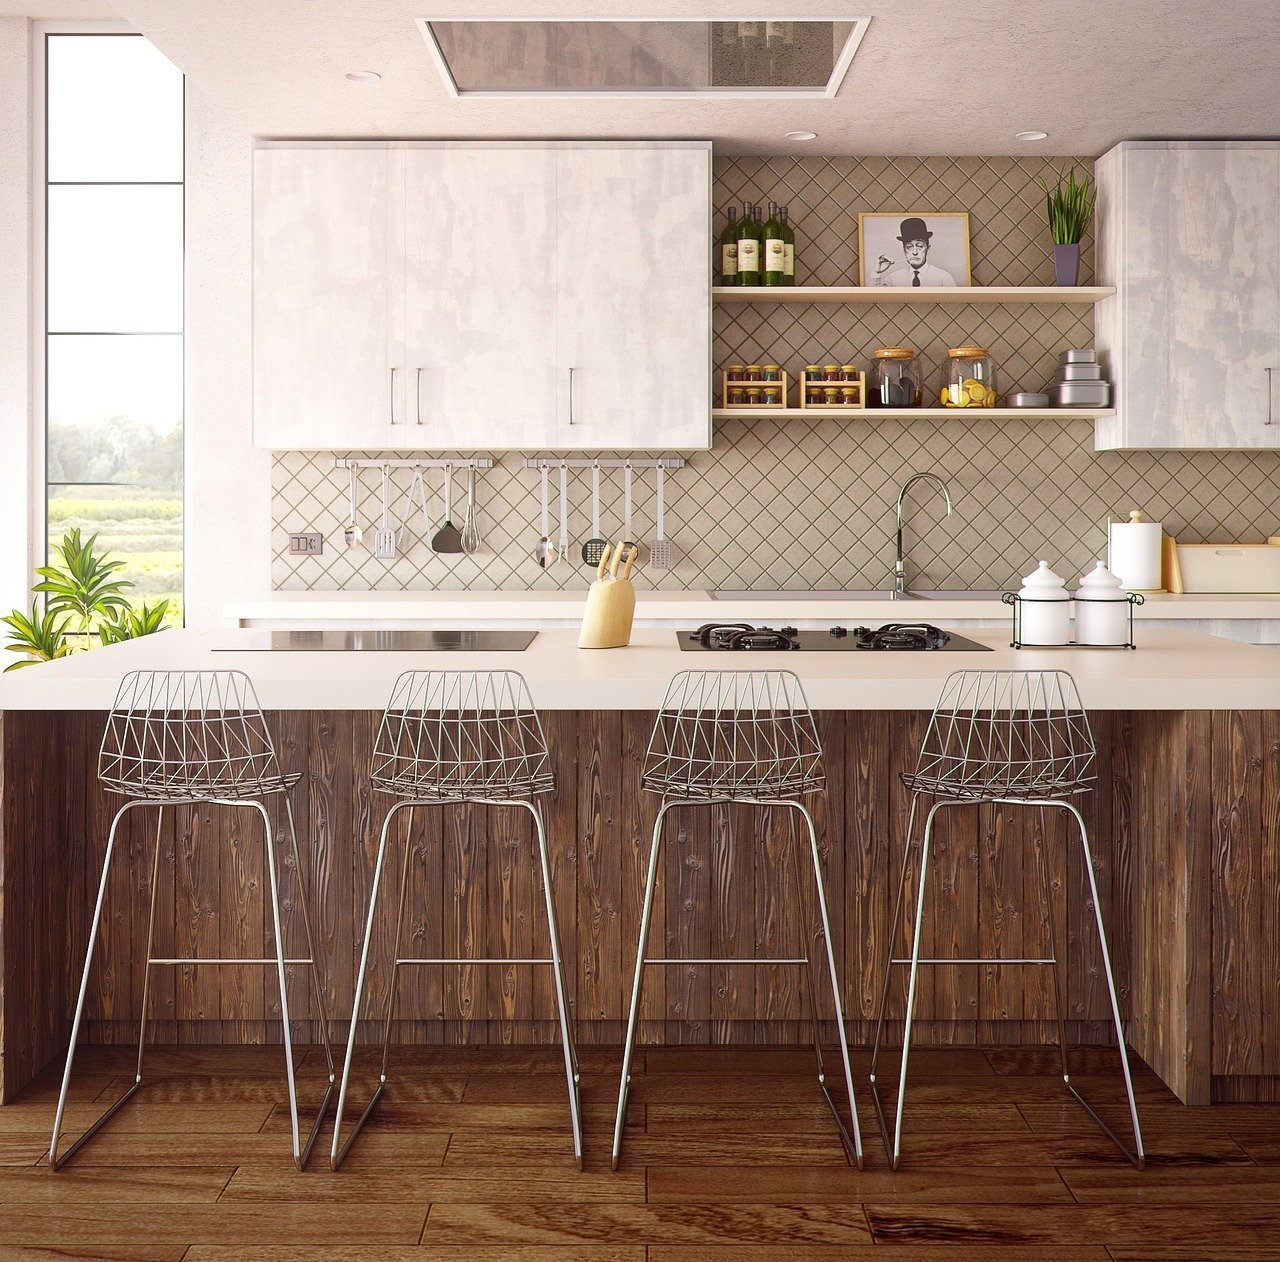 Kitchen backsplash and counter tops give your home a new look for less